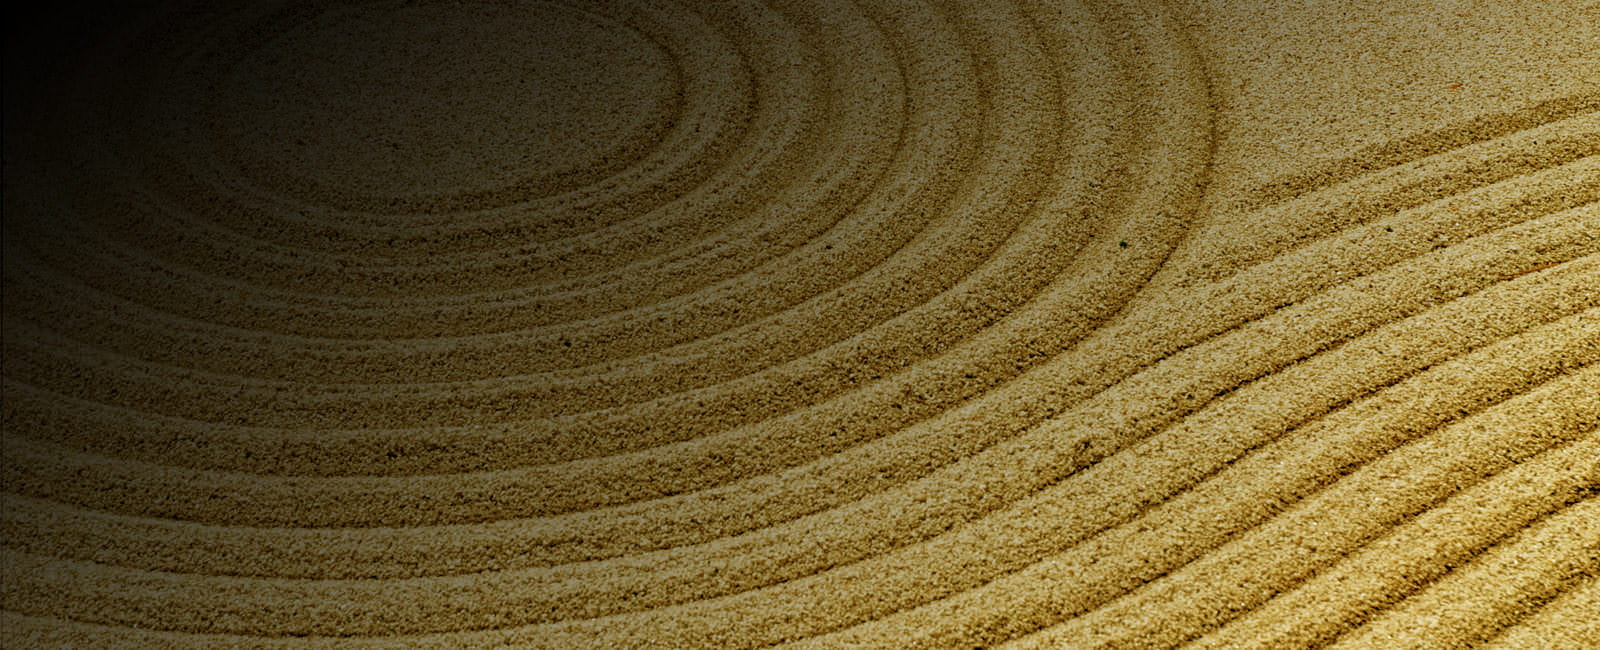 A repeating circular pattern etched into a zen sand garden